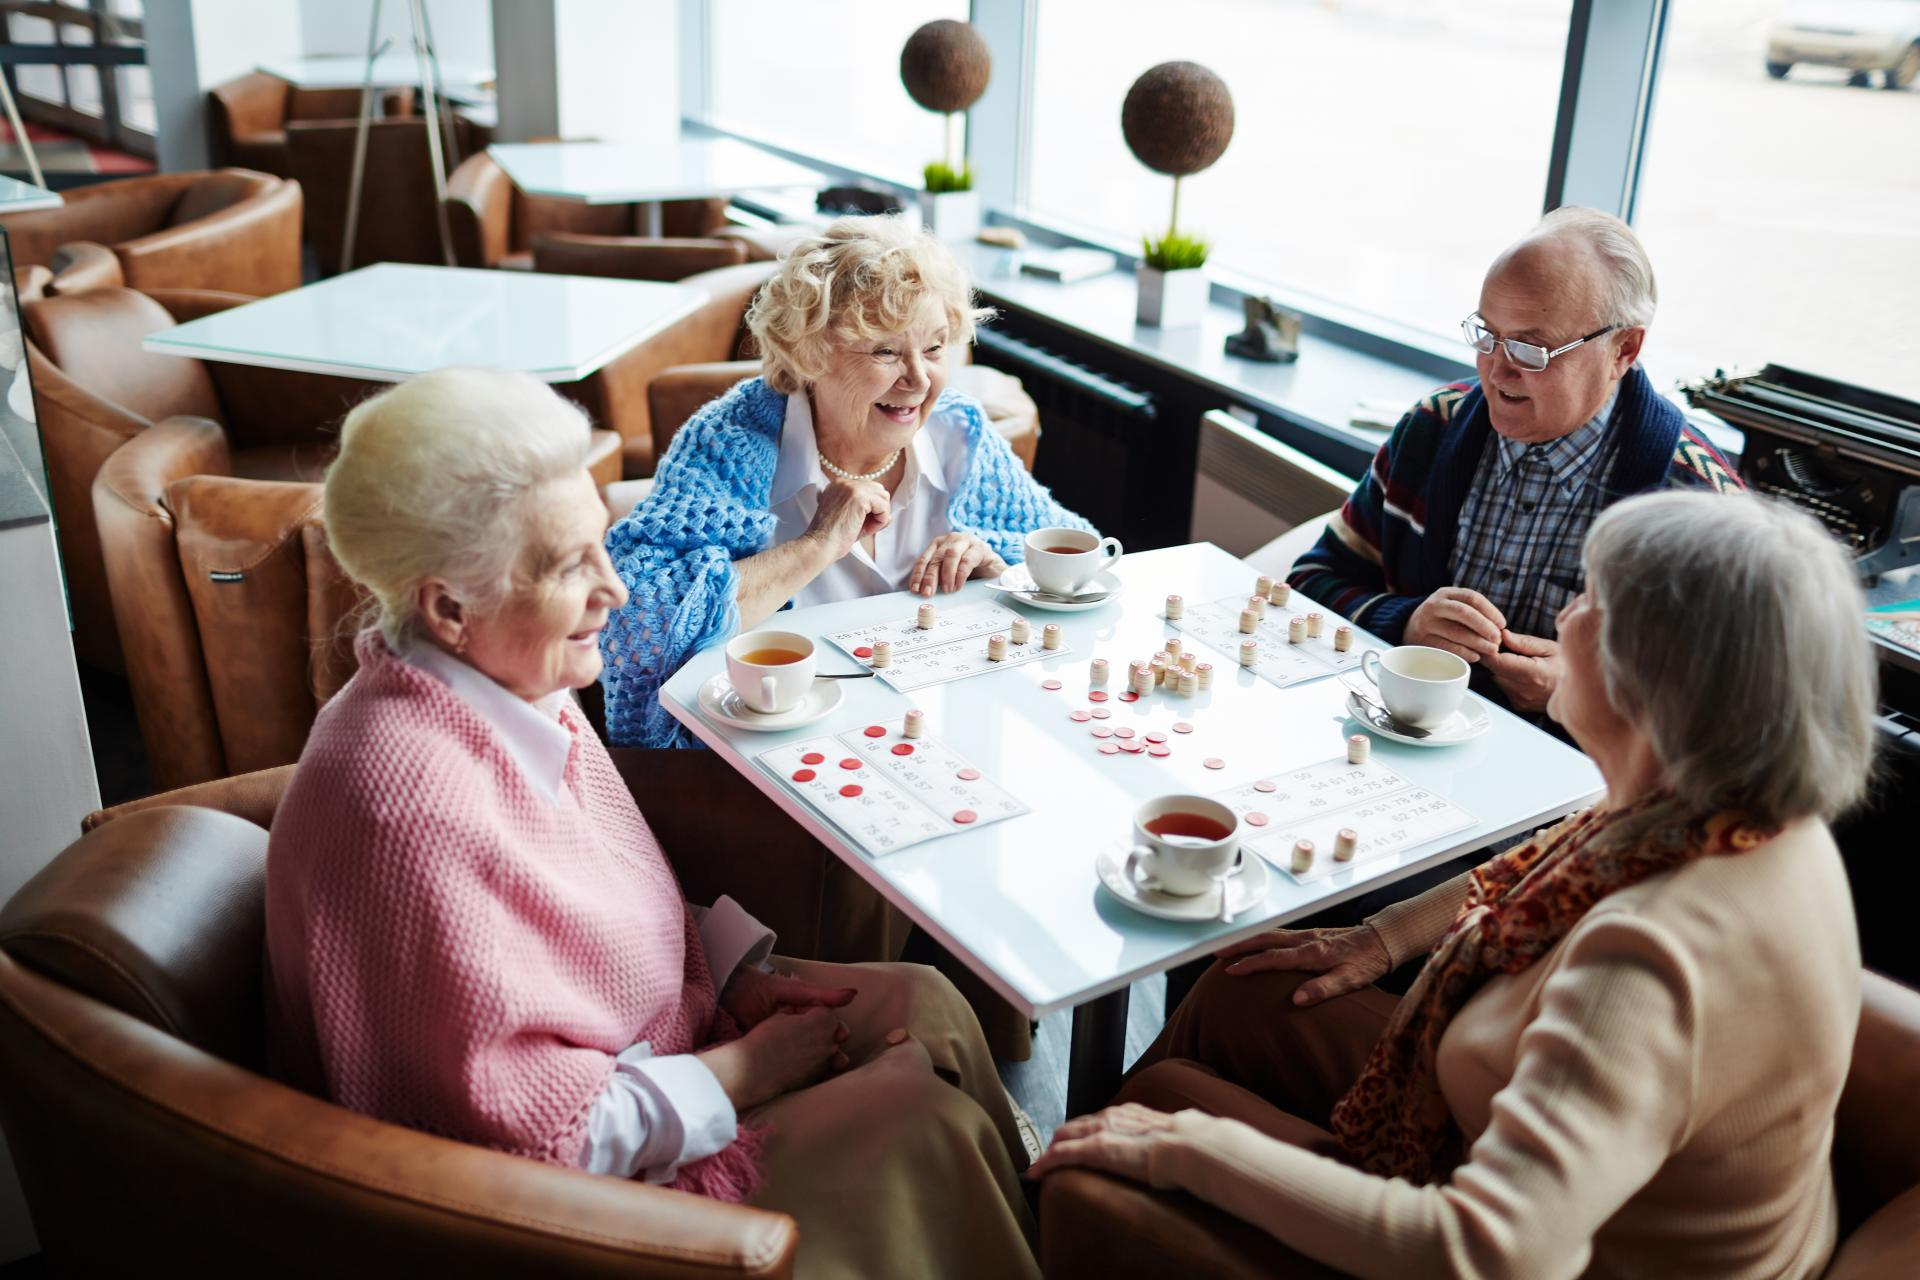 Carless + Adams care home residents playing a board game in the communal living space